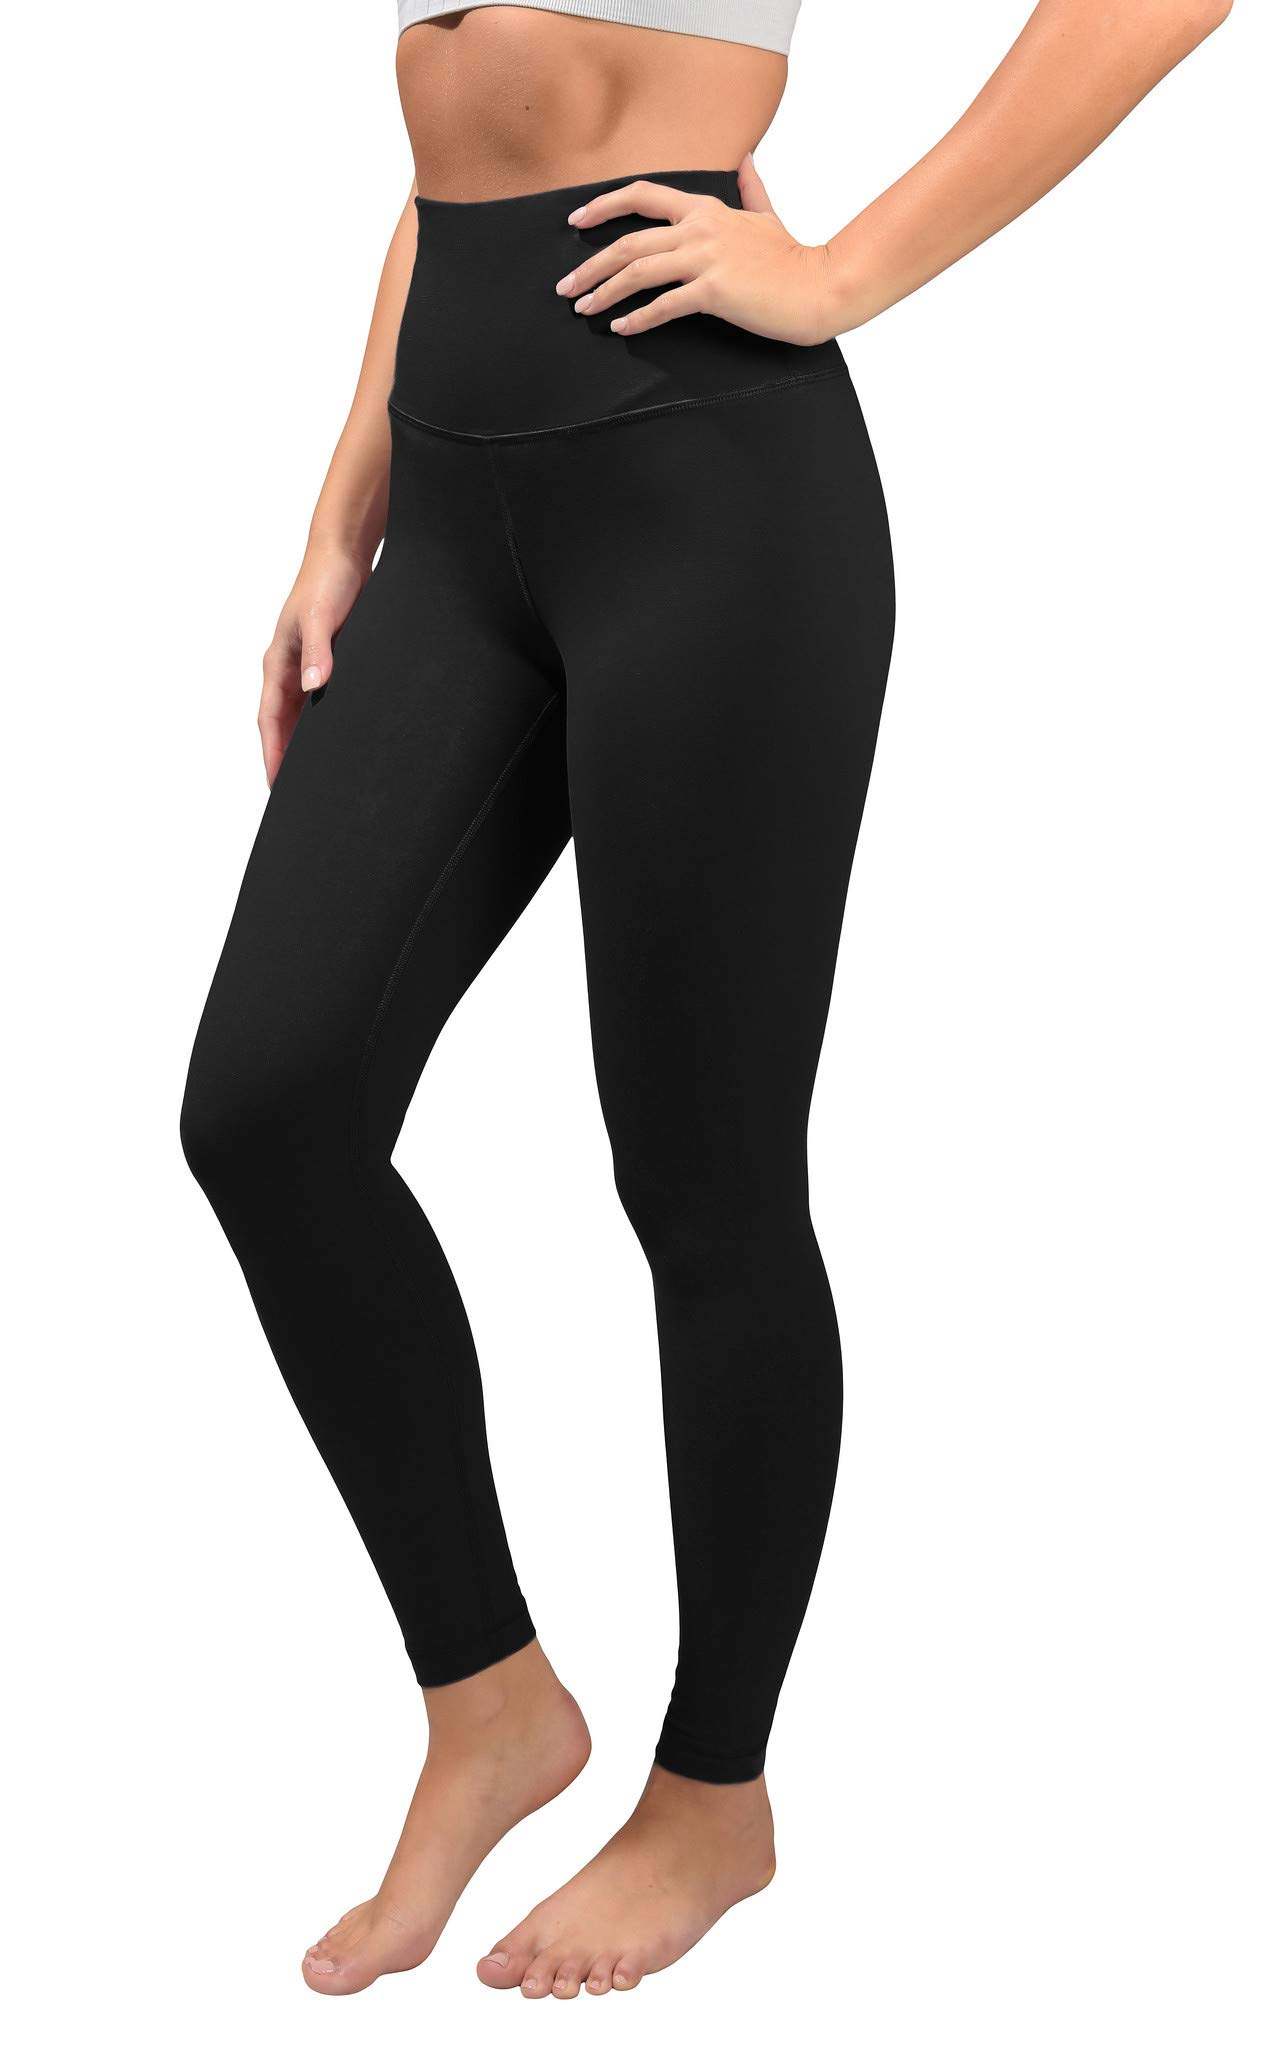 90 Degree By Reflex Cotton Super High Waist Ankle Length Compression Leggings with Elastic Free Waistband